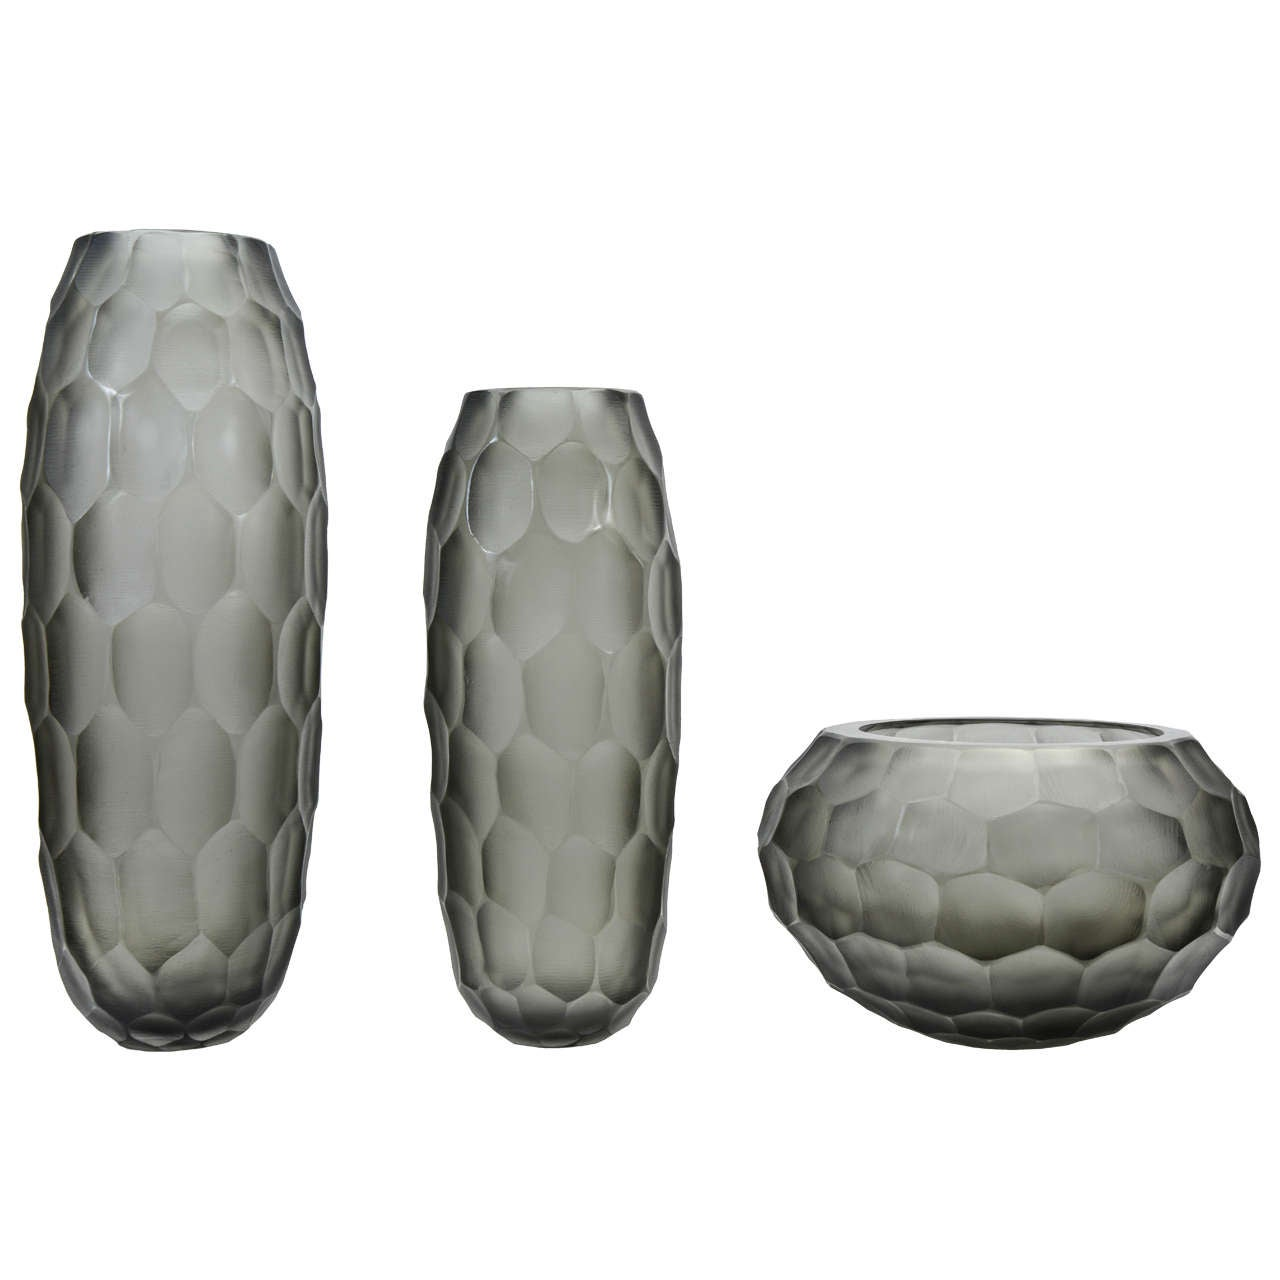 Set of Three Vases in Grey Murano Glass, Signed Toso Murano